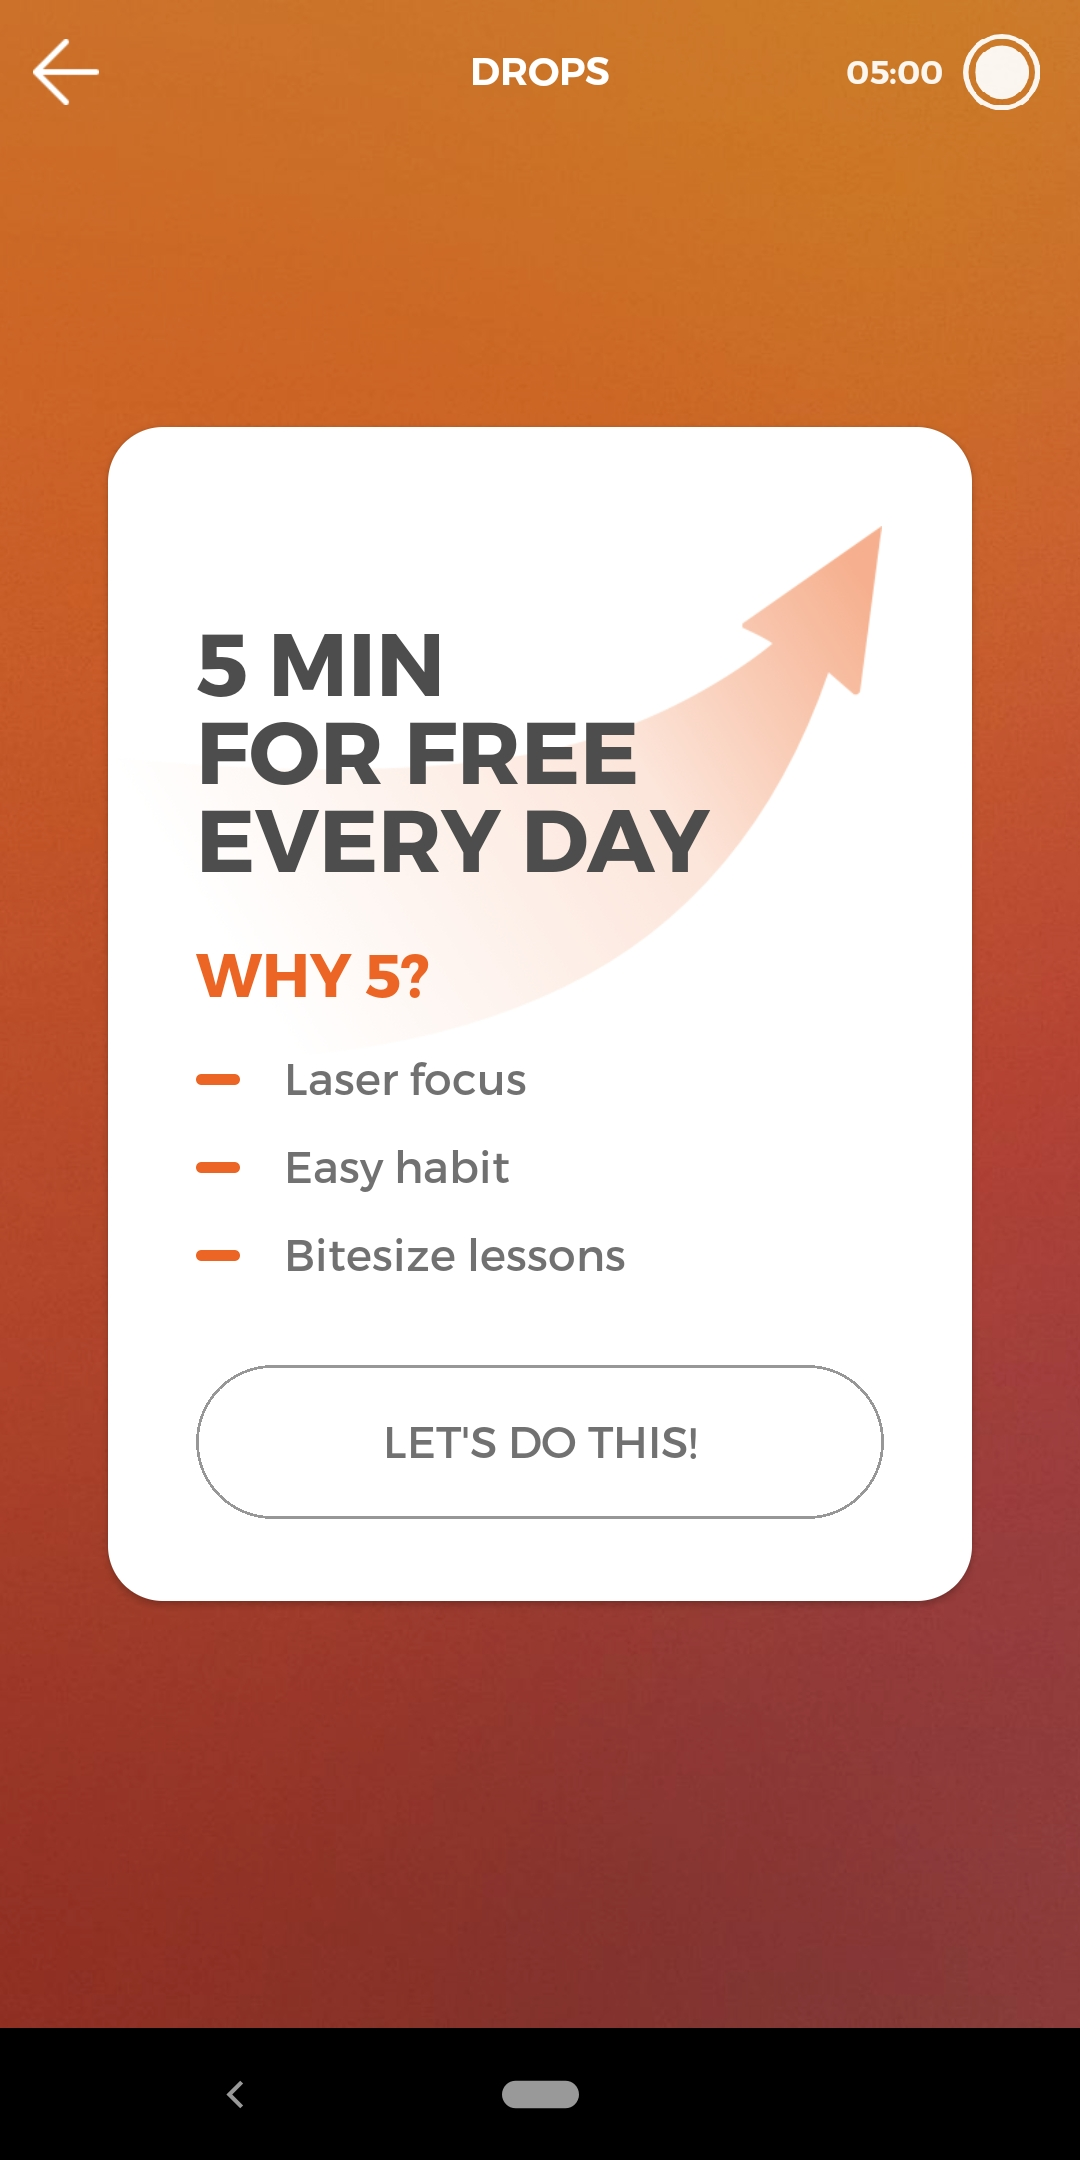 Drops mobile app's 5 minutes free screen